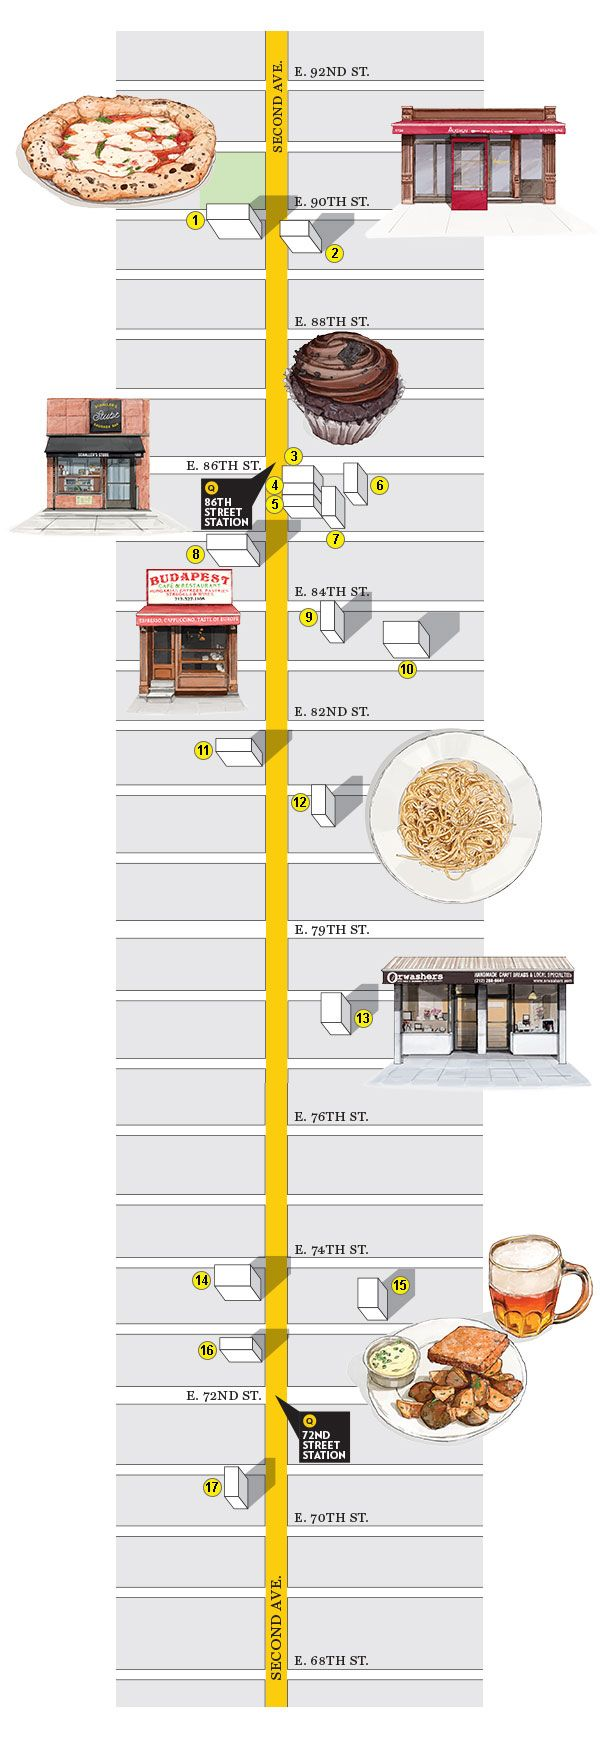 Q Second Avenue Subway Map.Where To Eat Along The Second Avenue Subway